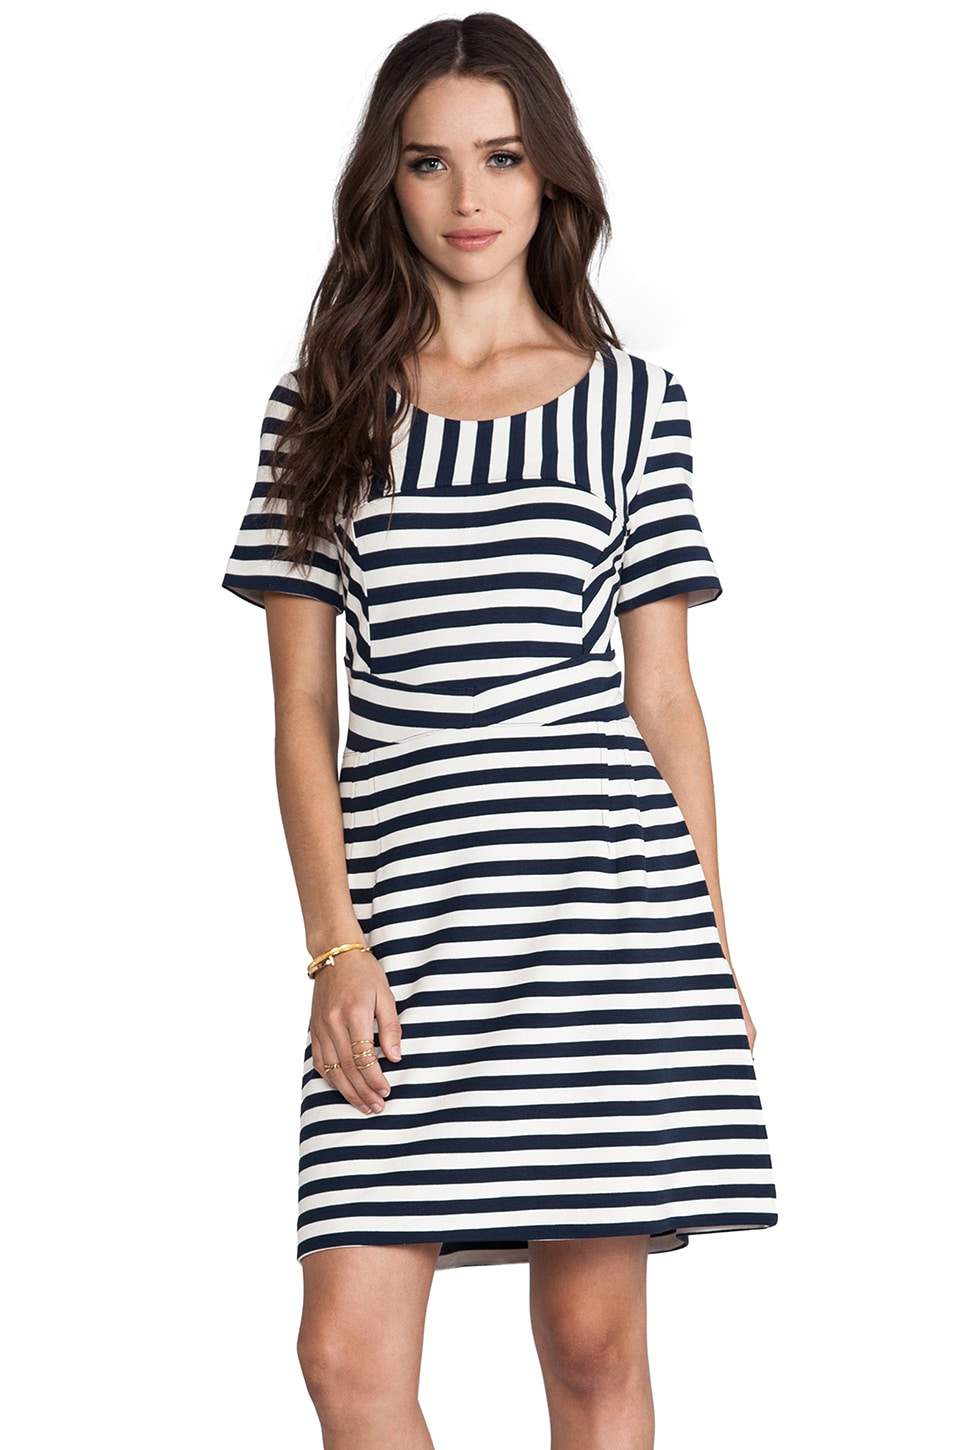 Marc by Marc Jacobs Yuni Stripe Dress in Black Iris